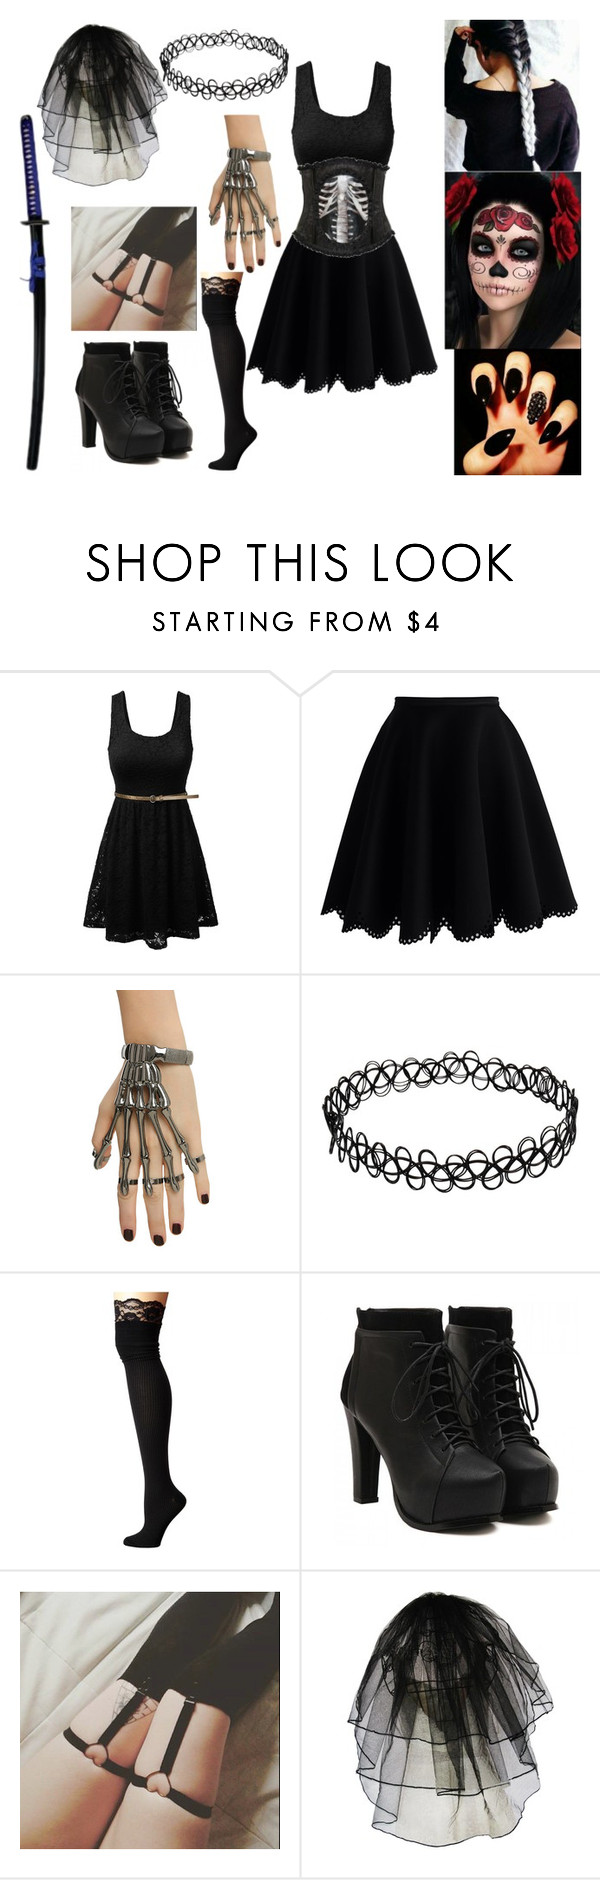 """Skelegirl ( creepypasta )"" by hellhound-chloe666 ❤ liked on Polyvore featuring Chicwish and M&F Western"